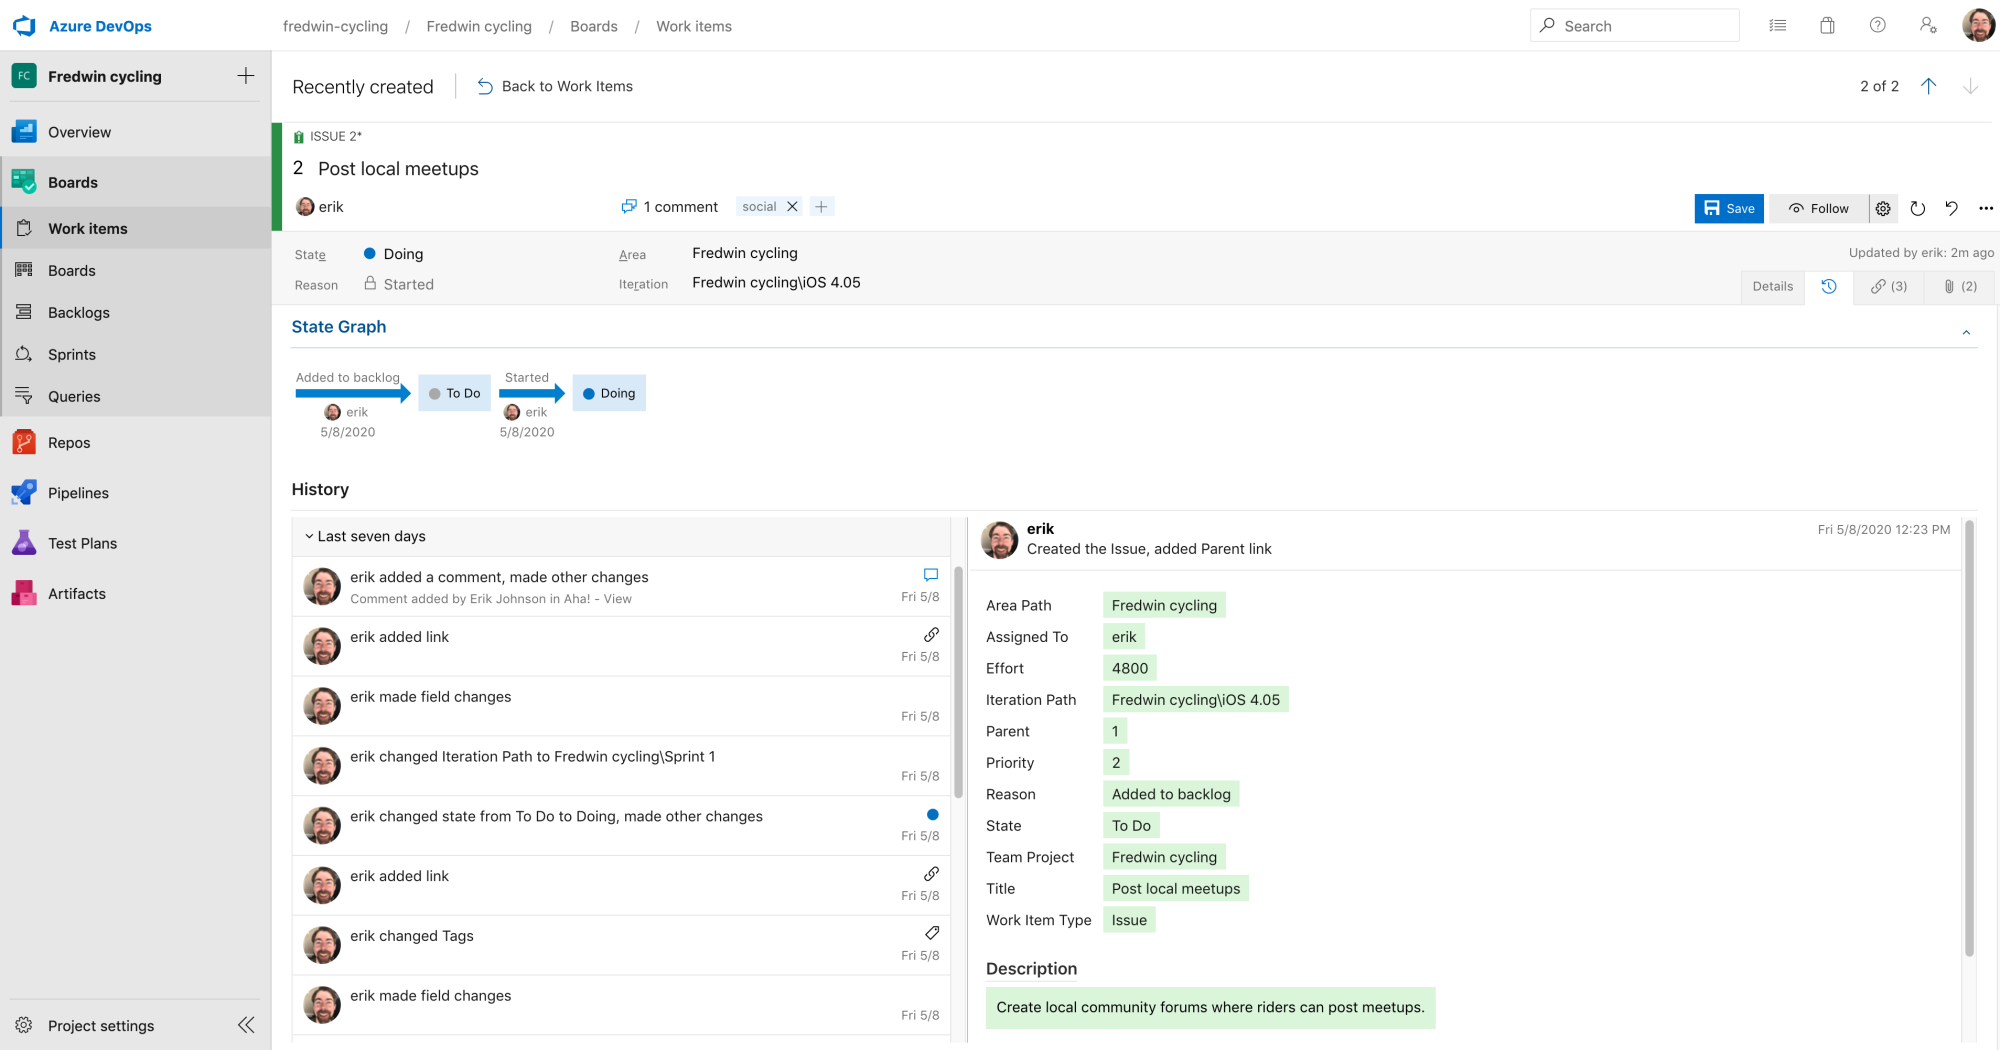 Features appear as user stories in Azure DevOps for engineering to work on.